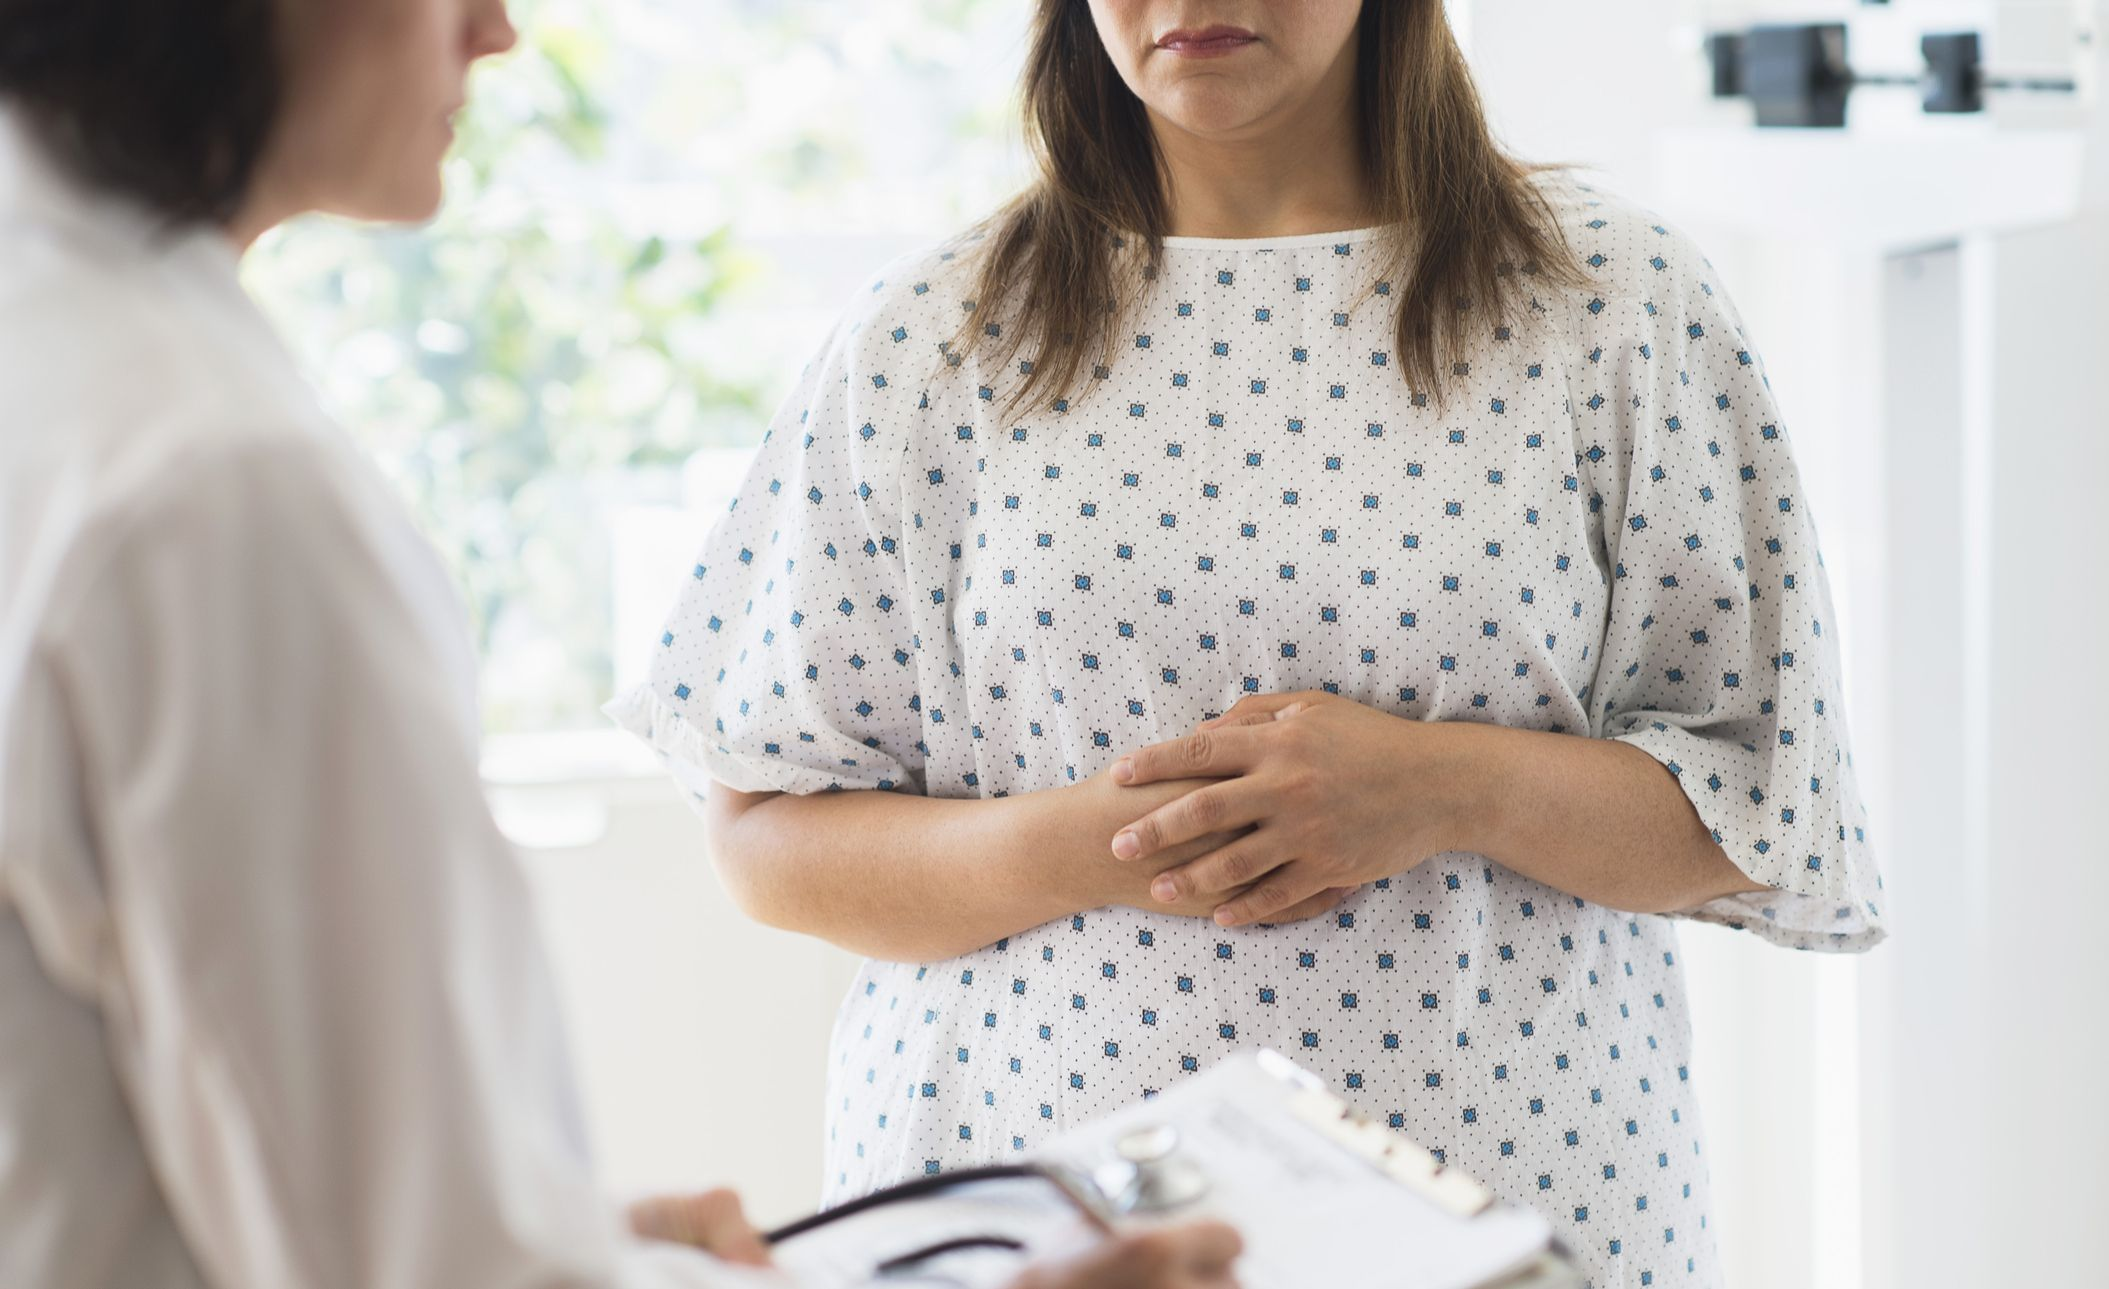 early symptoms of ovarian cancer